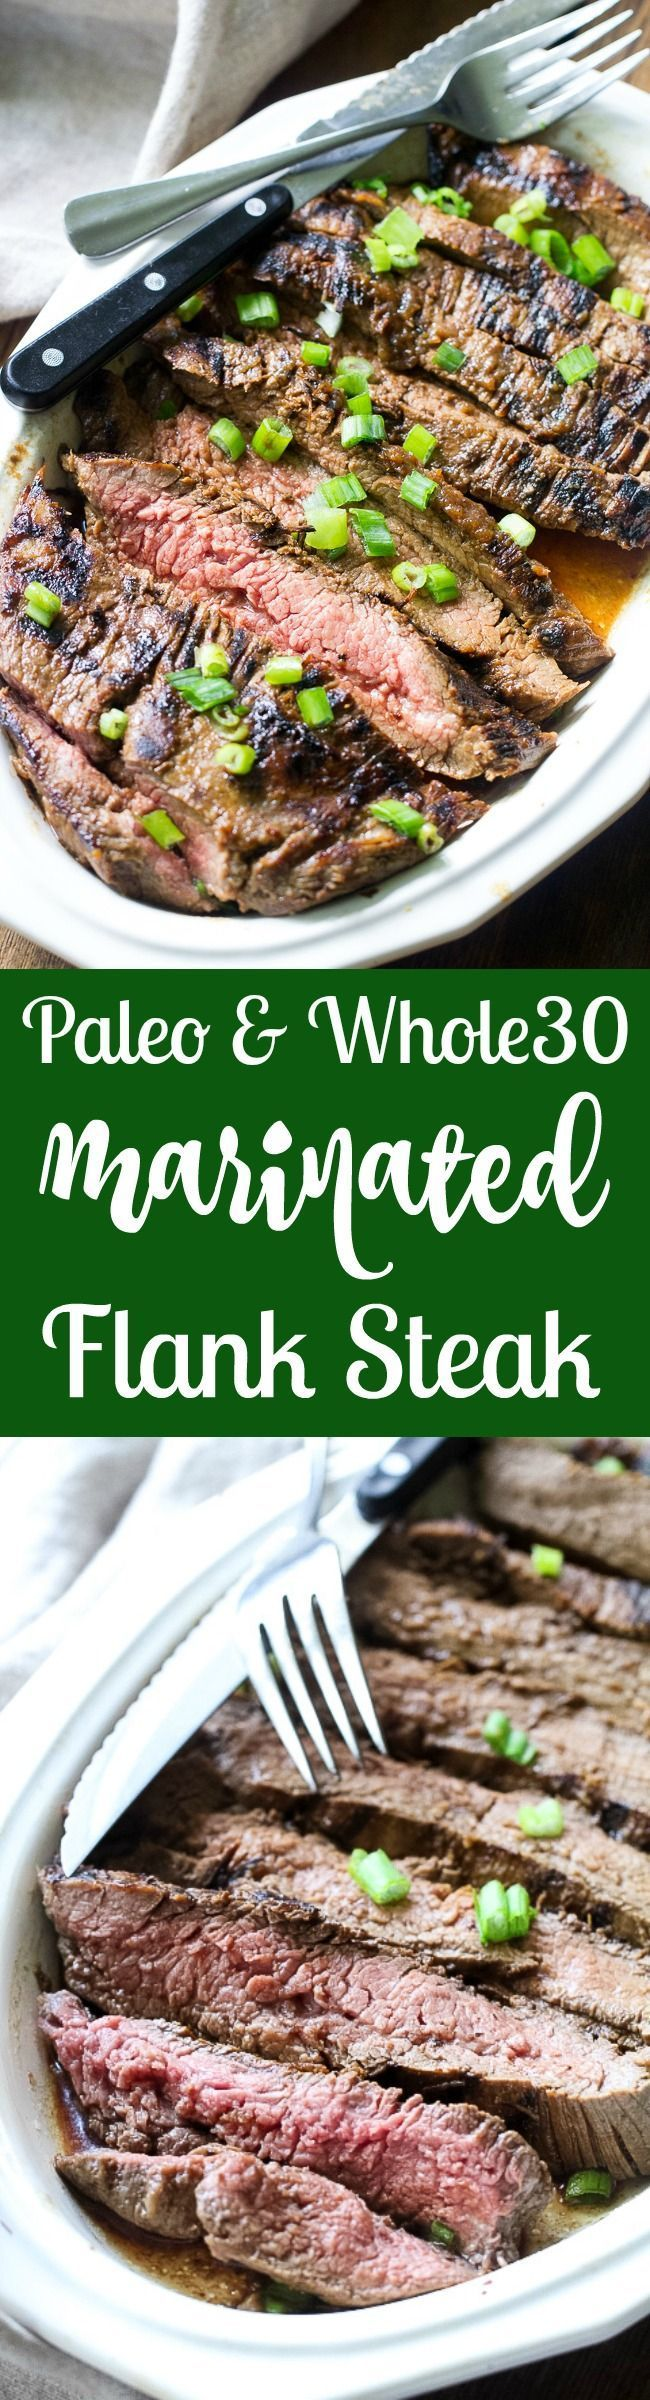 This Paleo and Whole30 grilled marinated flank steak will become your go-to recipe to top salads or serve with your favorite grilled veggies and potatoes. The marinade comes together in a blender and can be boiled into a sauce to serve with the steak. Gluten free, refined sugar free, soy free, dairy free.